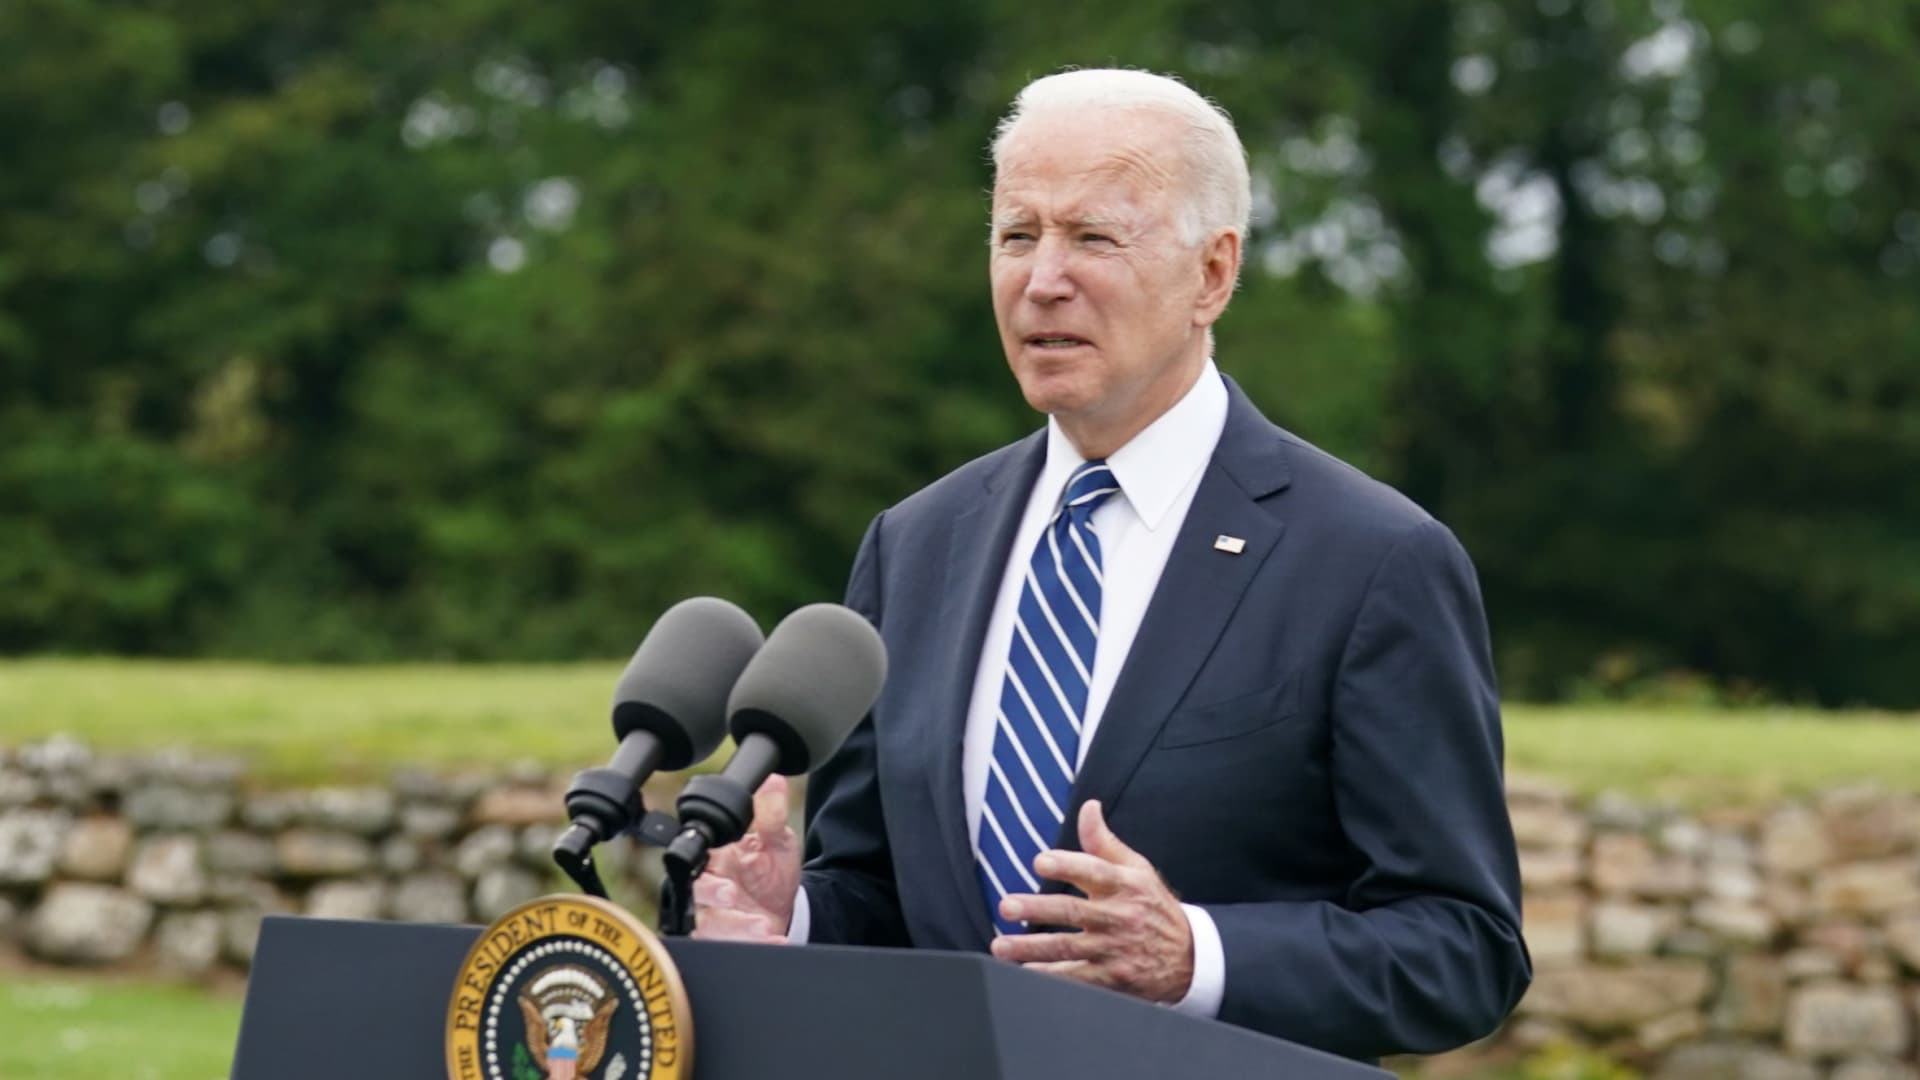 U.S. President Joe Biden speaks about his administration's pledge to donate 500 million doses of the Pfizer (PFE.N) coronavirus vaccine to the world's poorest countries, during a visit to St. Ives in Cornwall, Britain, June 10, 2021.